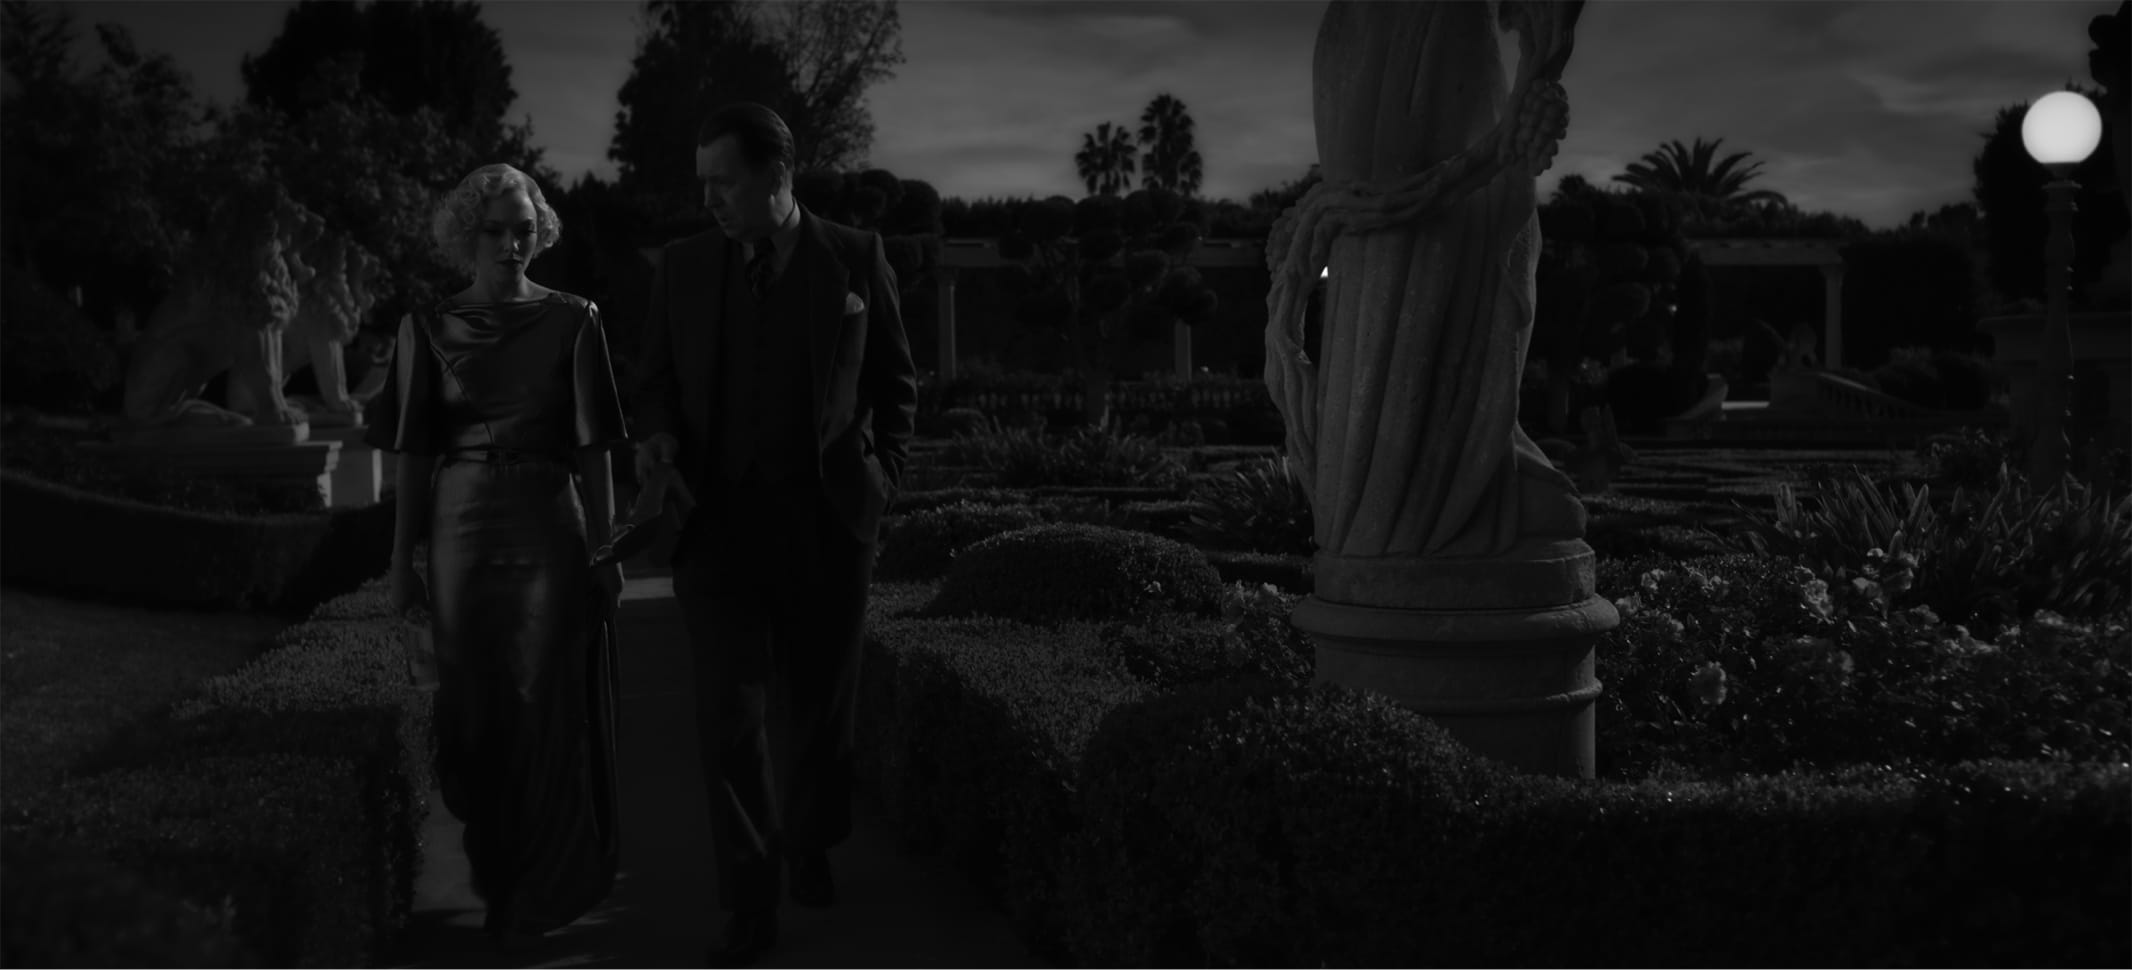 In a shot from the film, we see how the vibrant colors from the image above translate to a black-and-white experience. Light and shadow play off of Seyfriend's shimmering dress and around statues and greenery on the grounds.